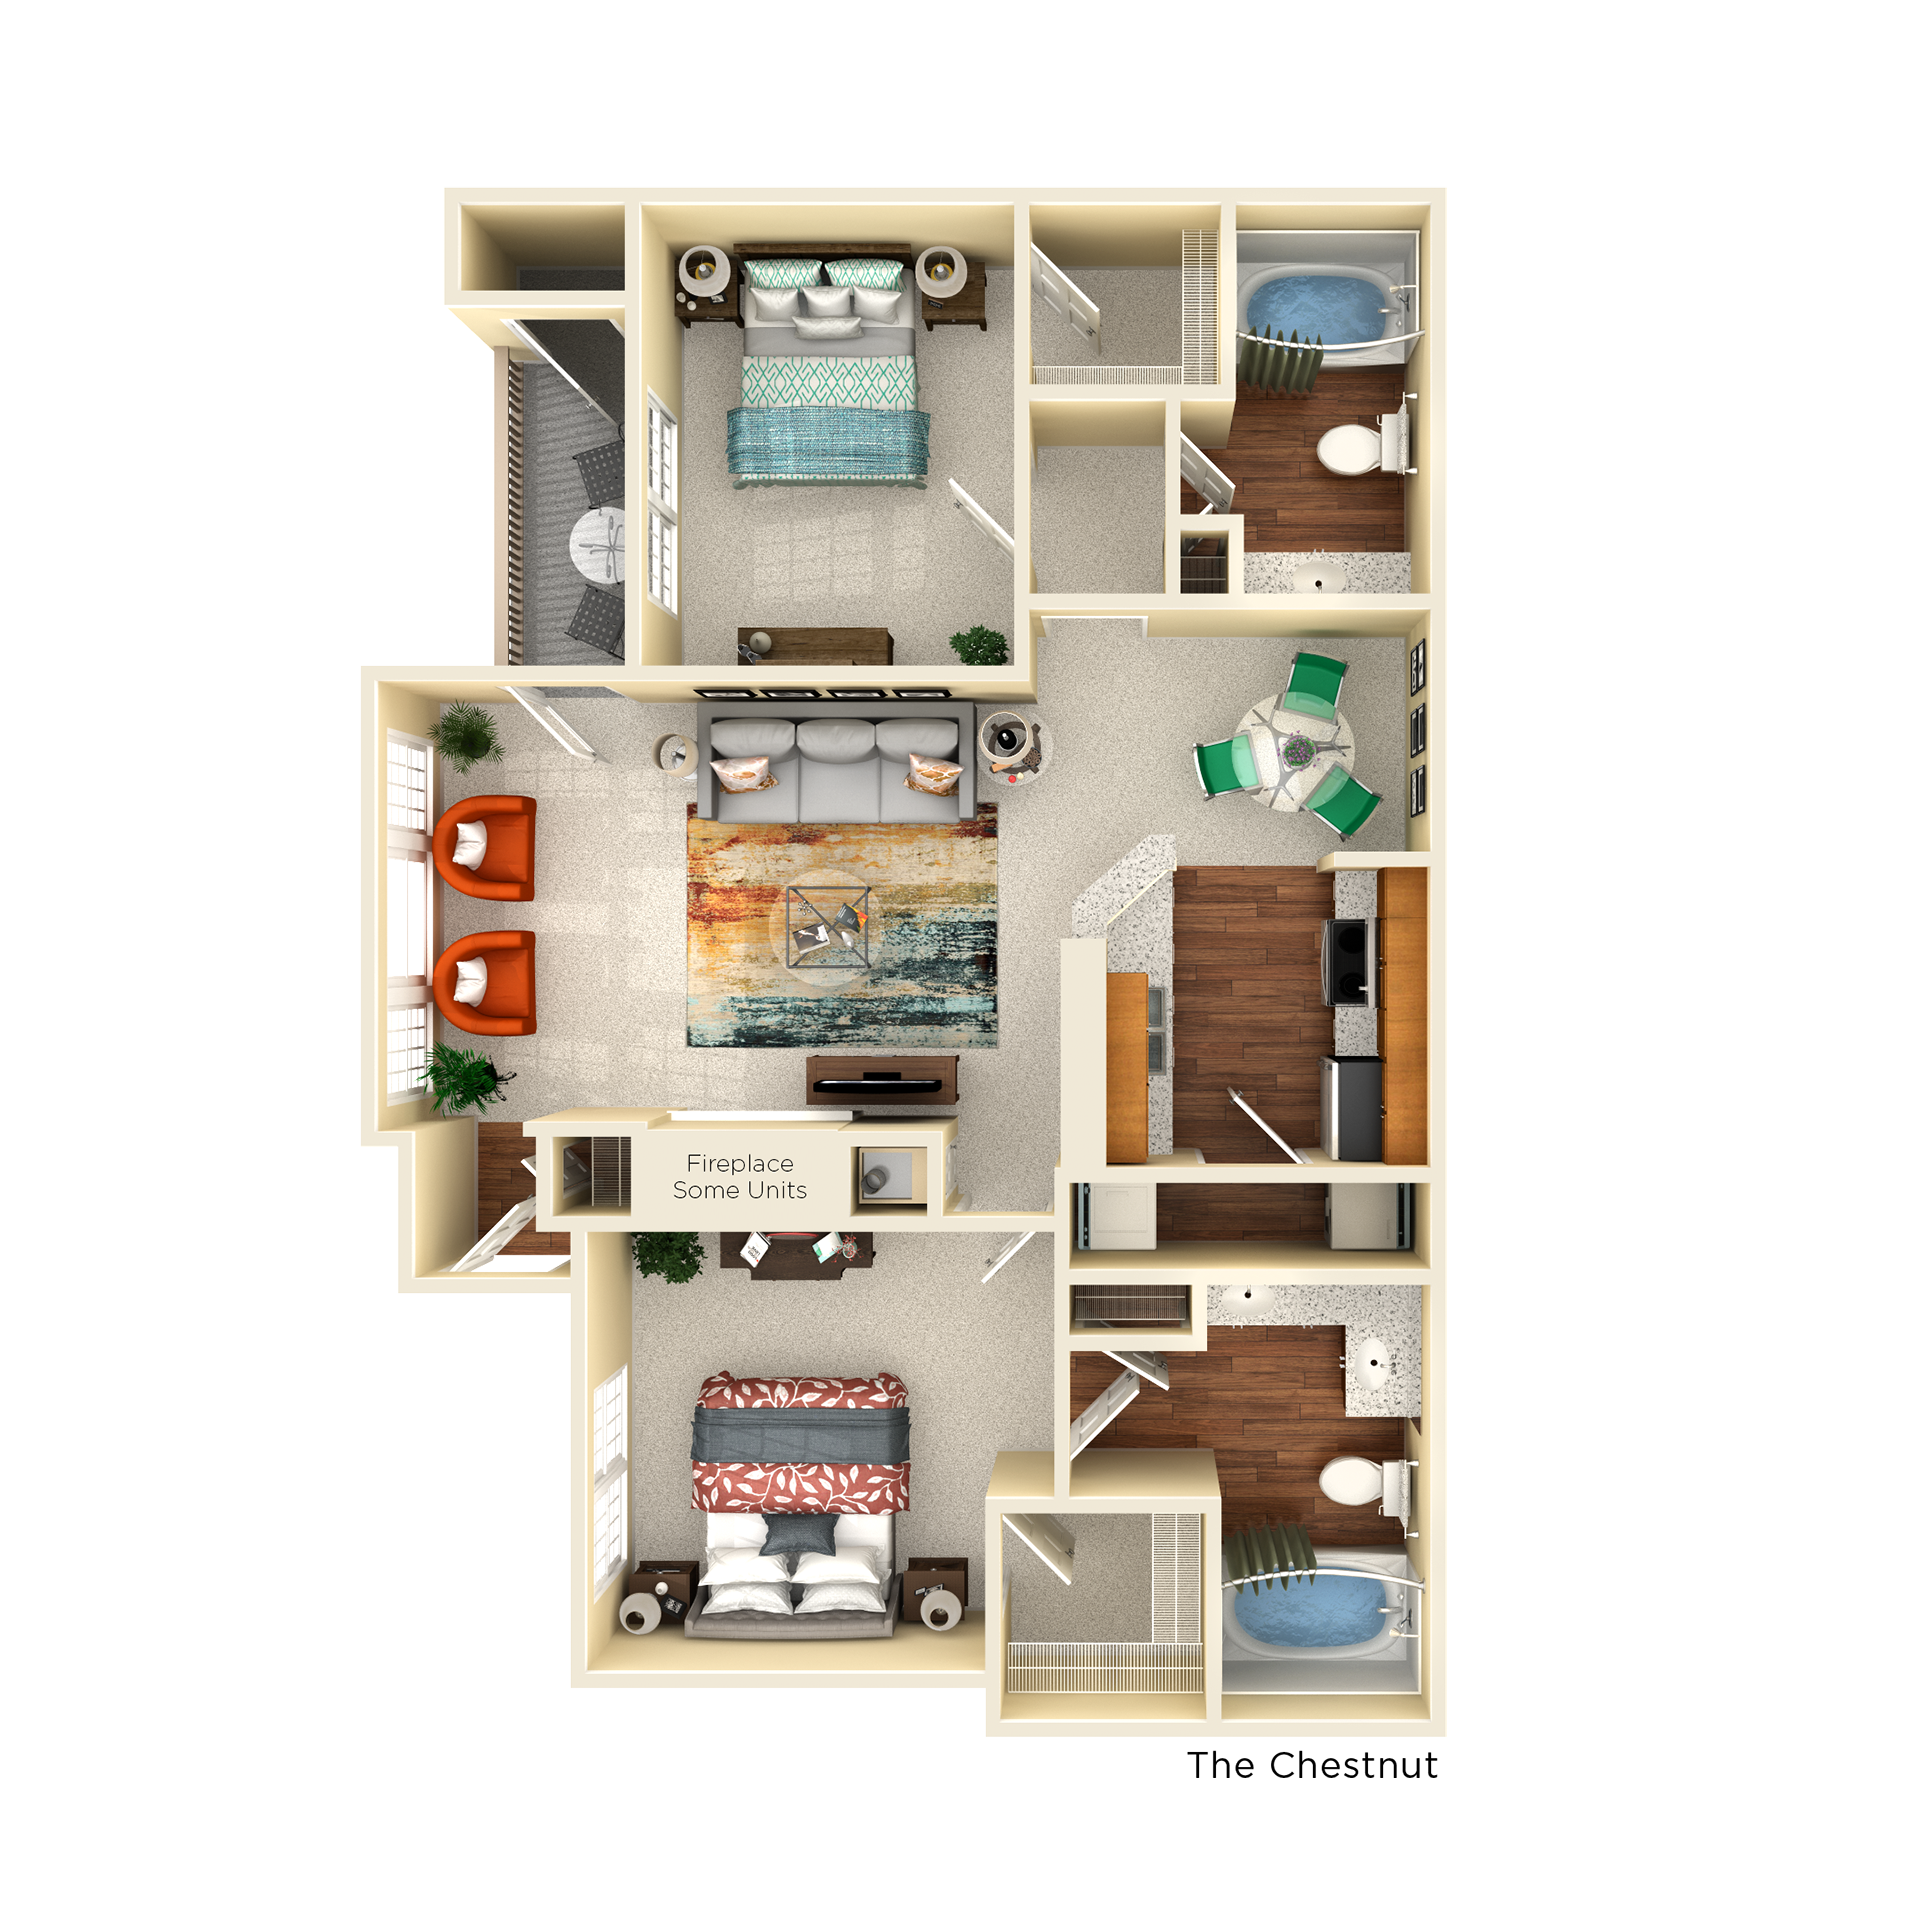 C1 chestnut floor plan